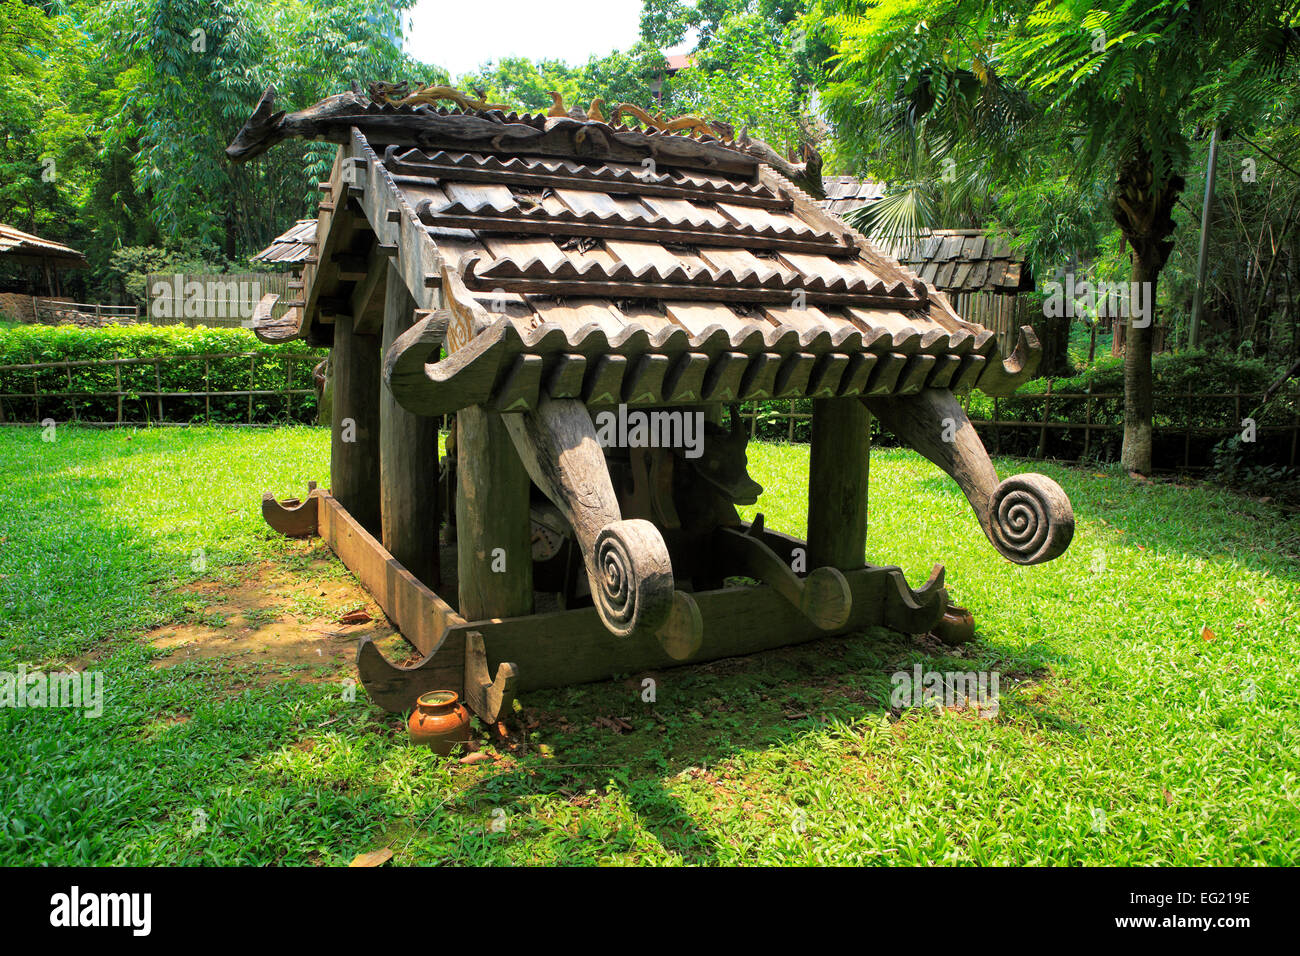 Wooden structure, Ethnography museum, Hanoi, Vietnam - Stock Image